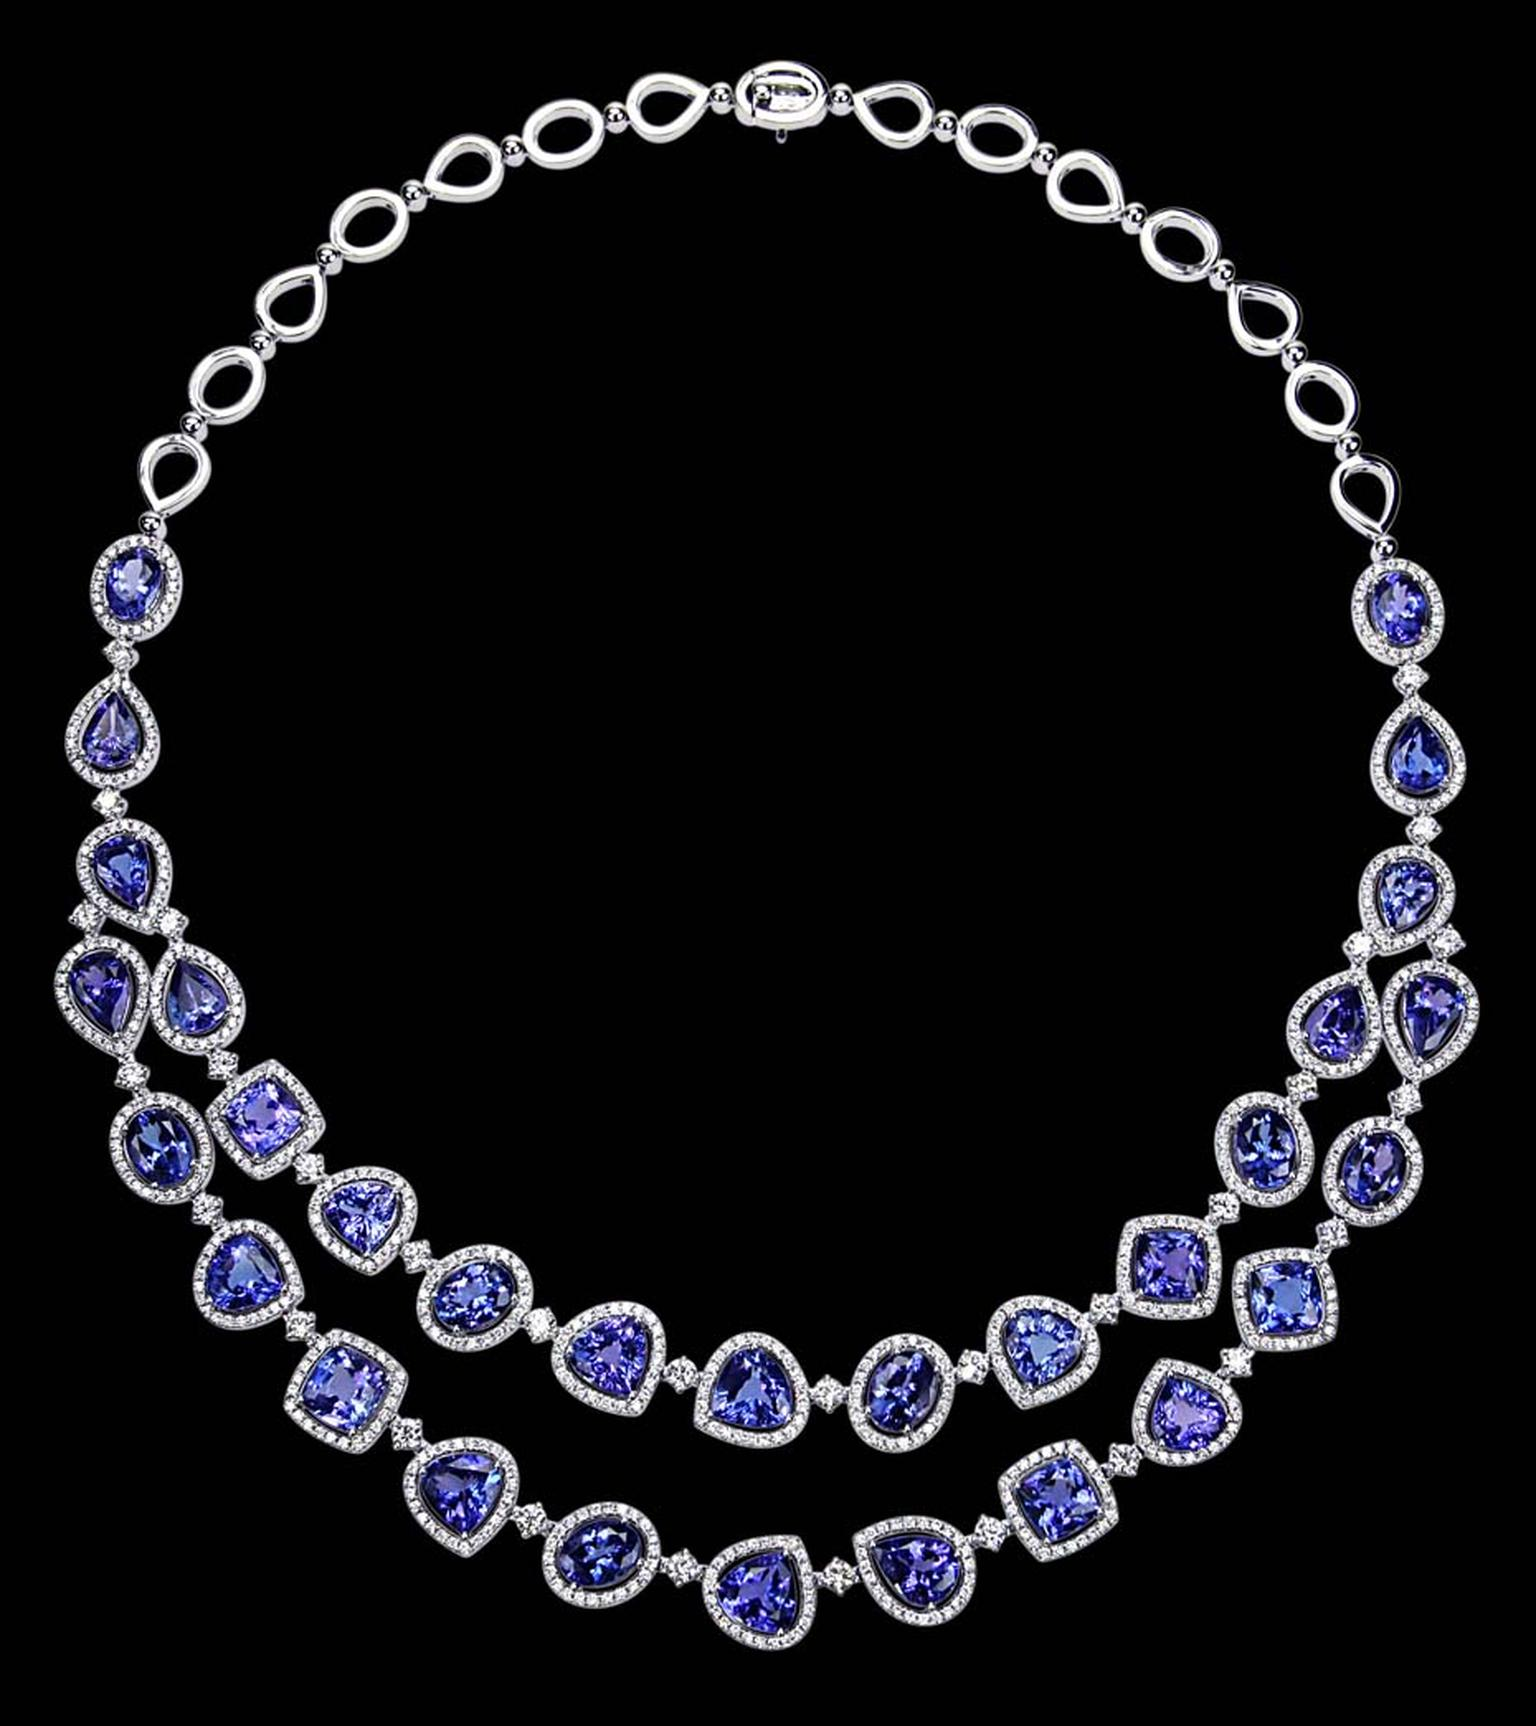 Entice necklace with fancy-shaped tanzanites surrounded by diamonds.